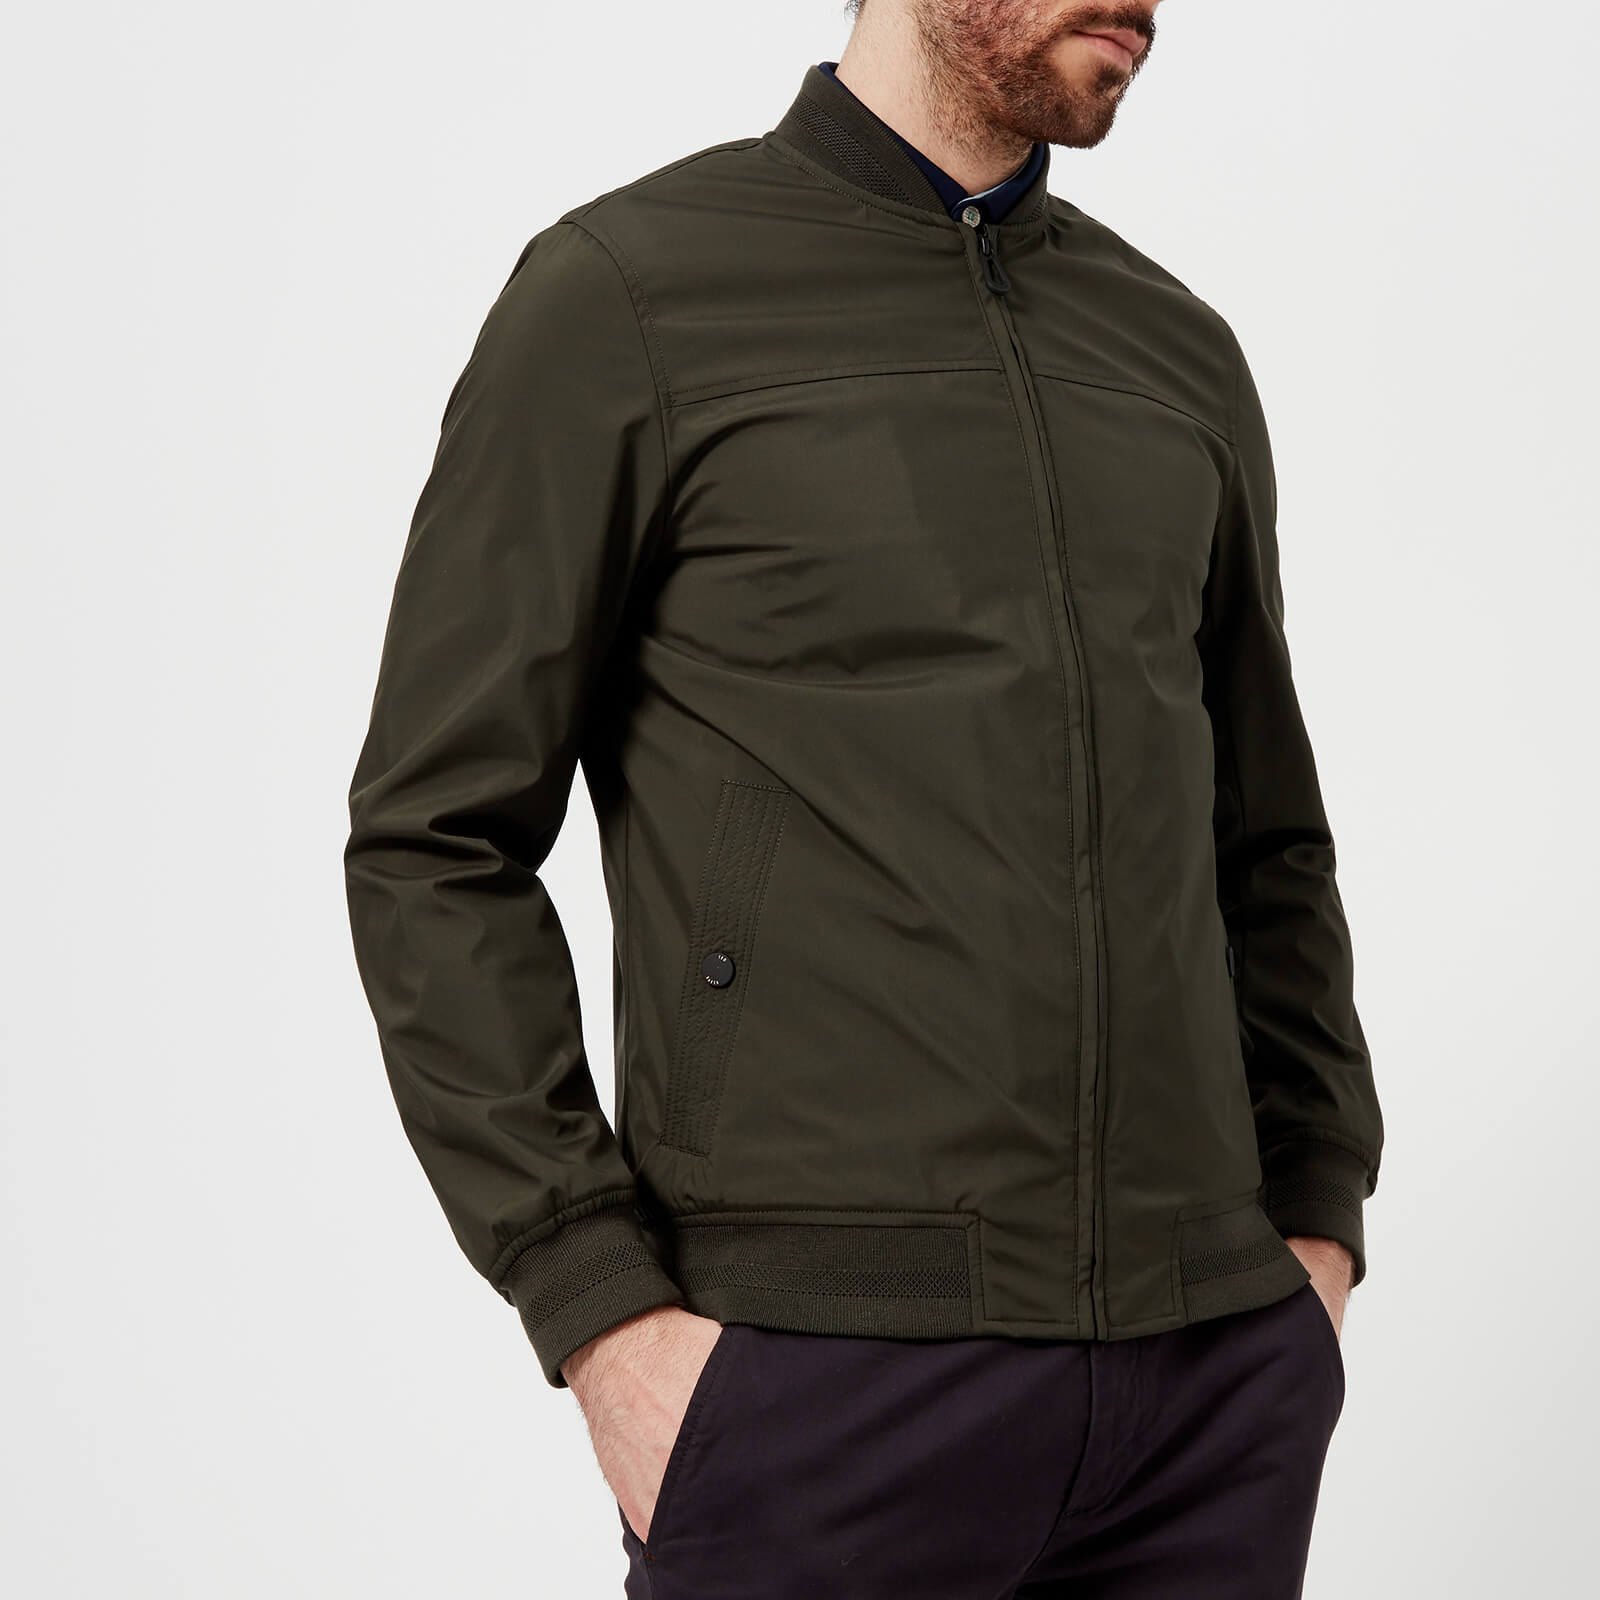 48caeb4ca53a Ted Baker Men s Ohta Core Bomber Jacket - Olive Clothing